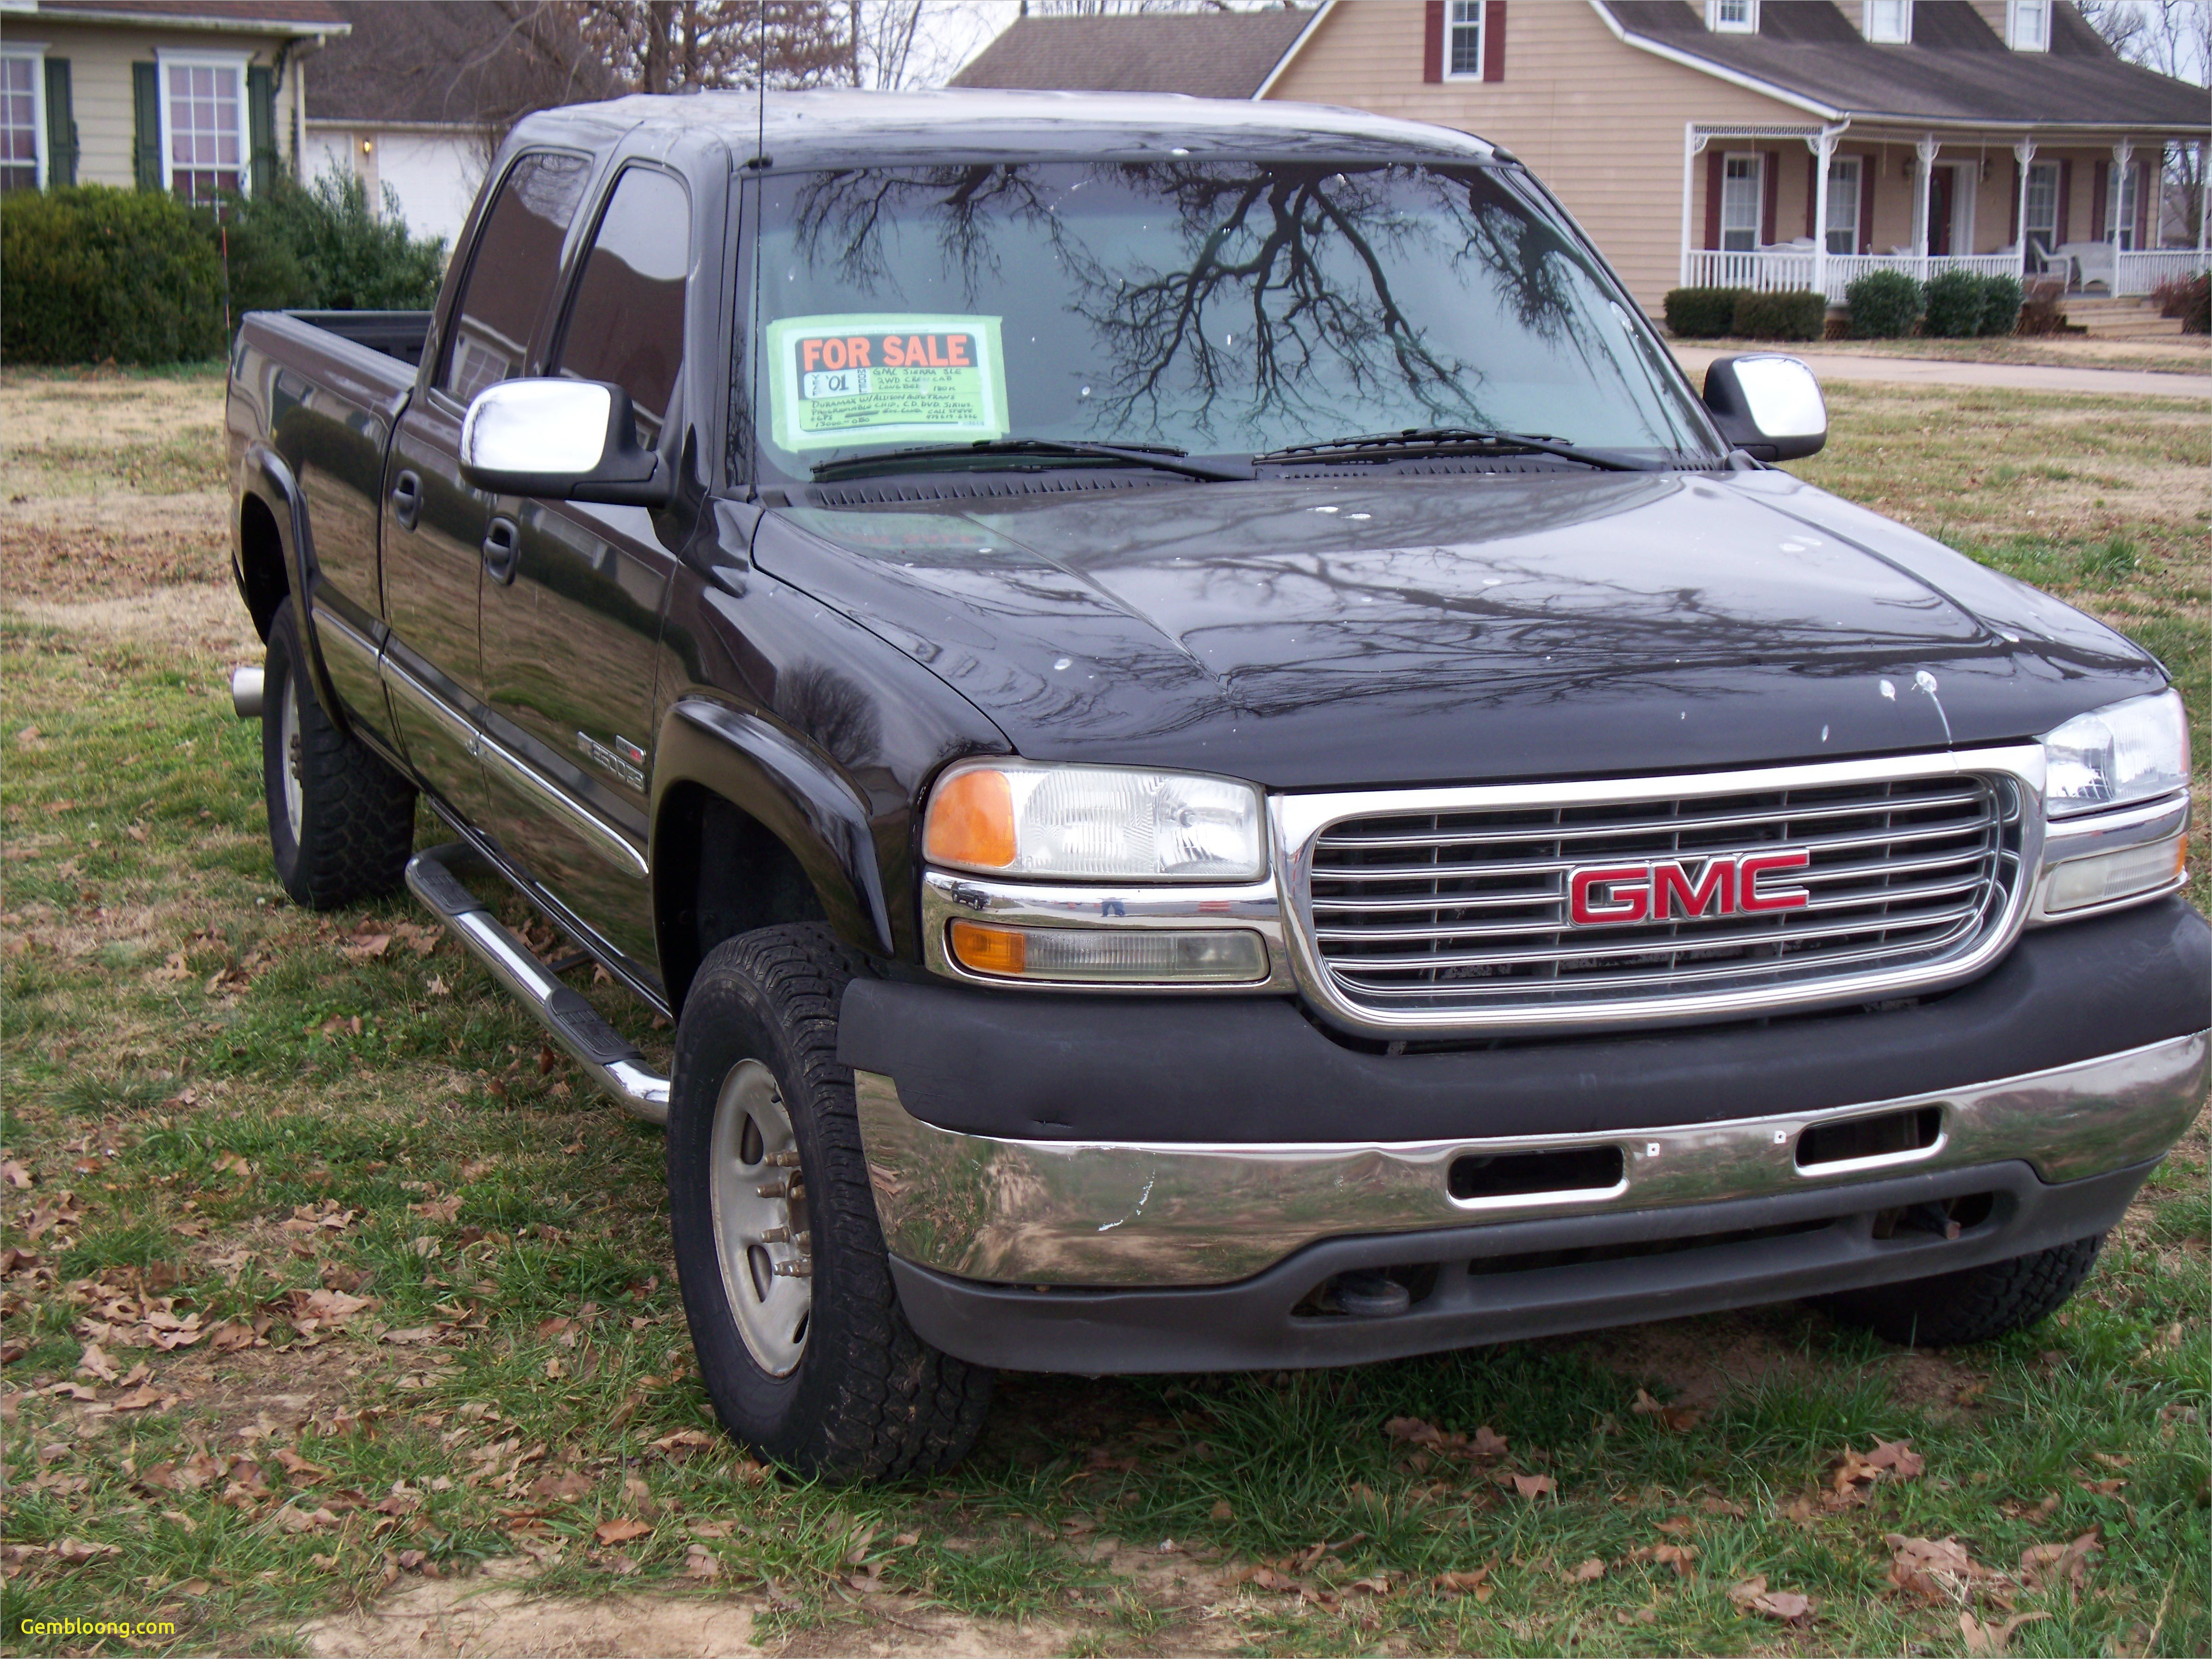 cars for sale by owner craigslist fresh cars for sale by owner best of elegant cheap